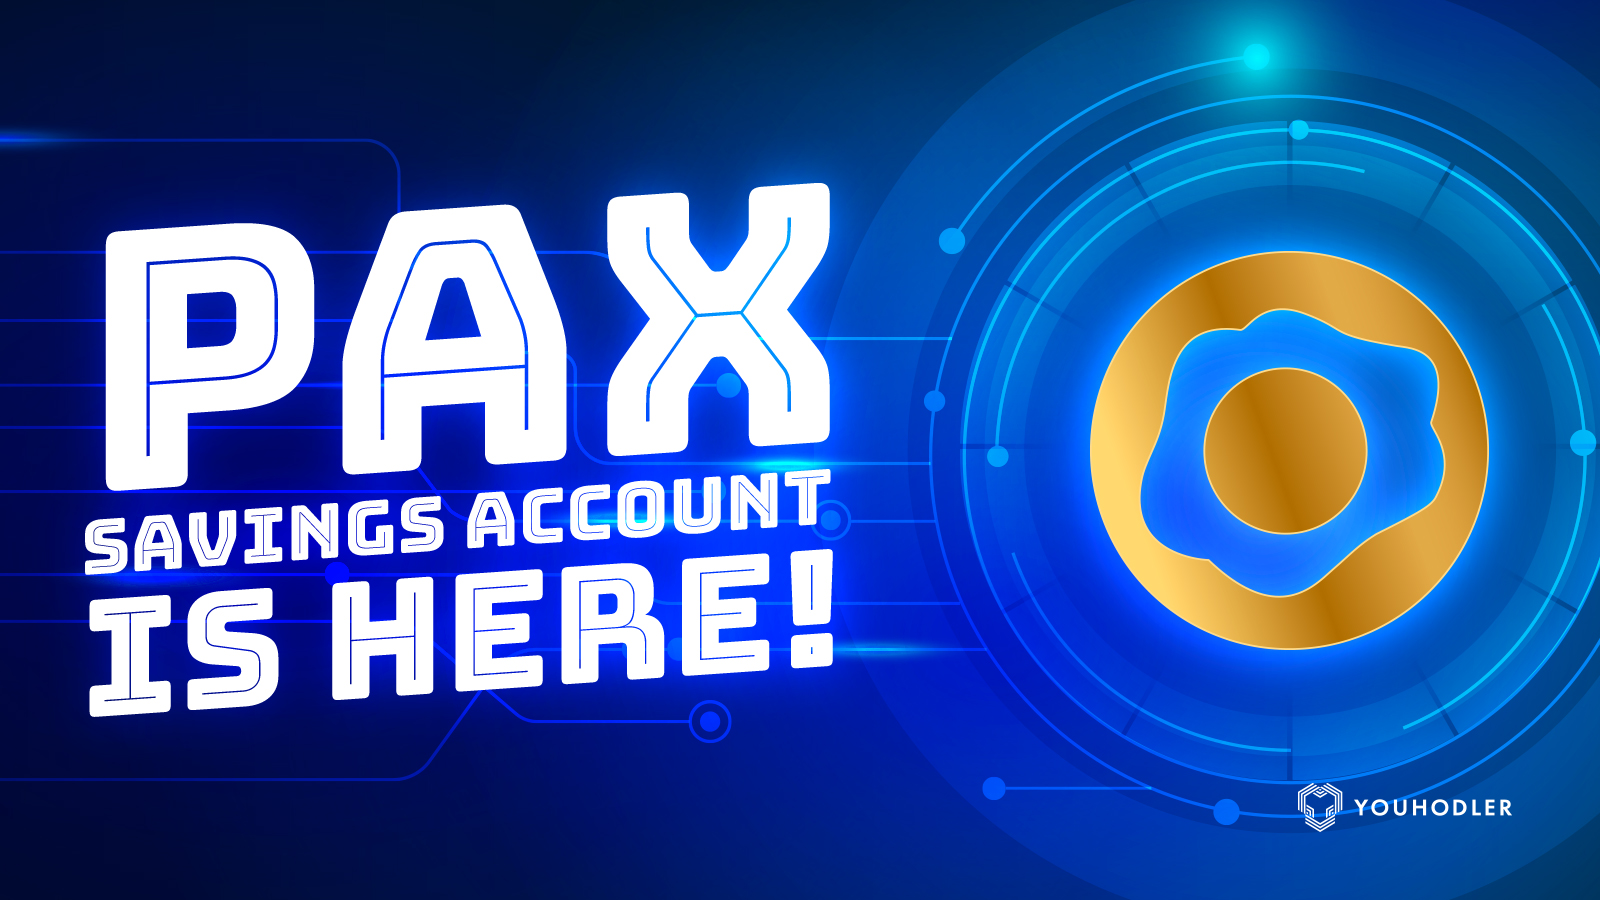 Deposit Paxos Standard (PAX) stablecoin on YouHodler.com and start earning interest up to 12% per annum.